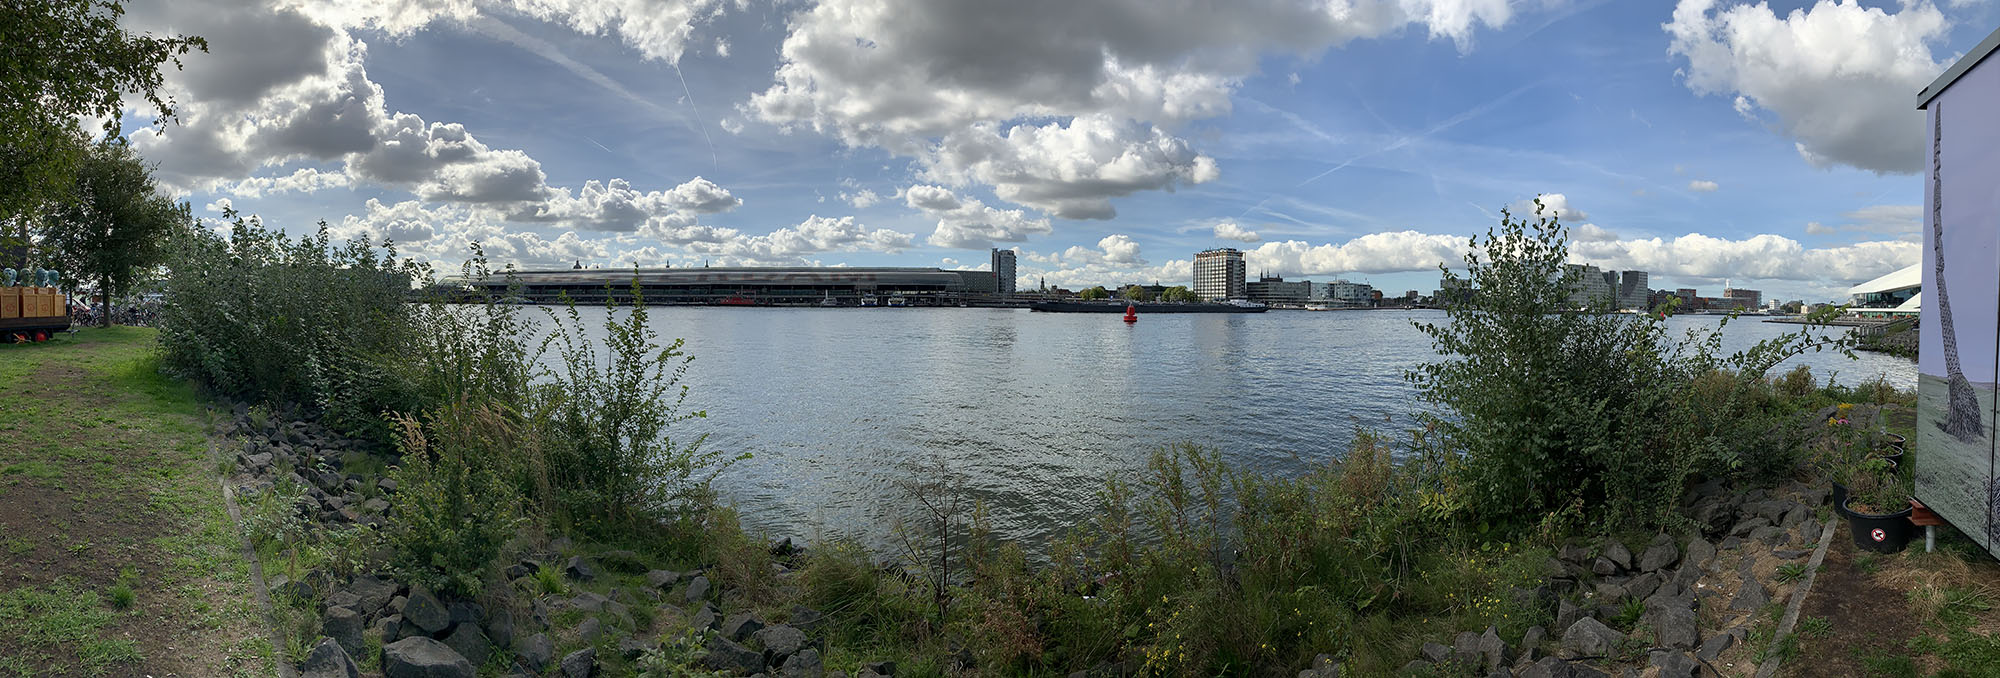 Panorama, foto gemaakt met iPhone 8 Plus